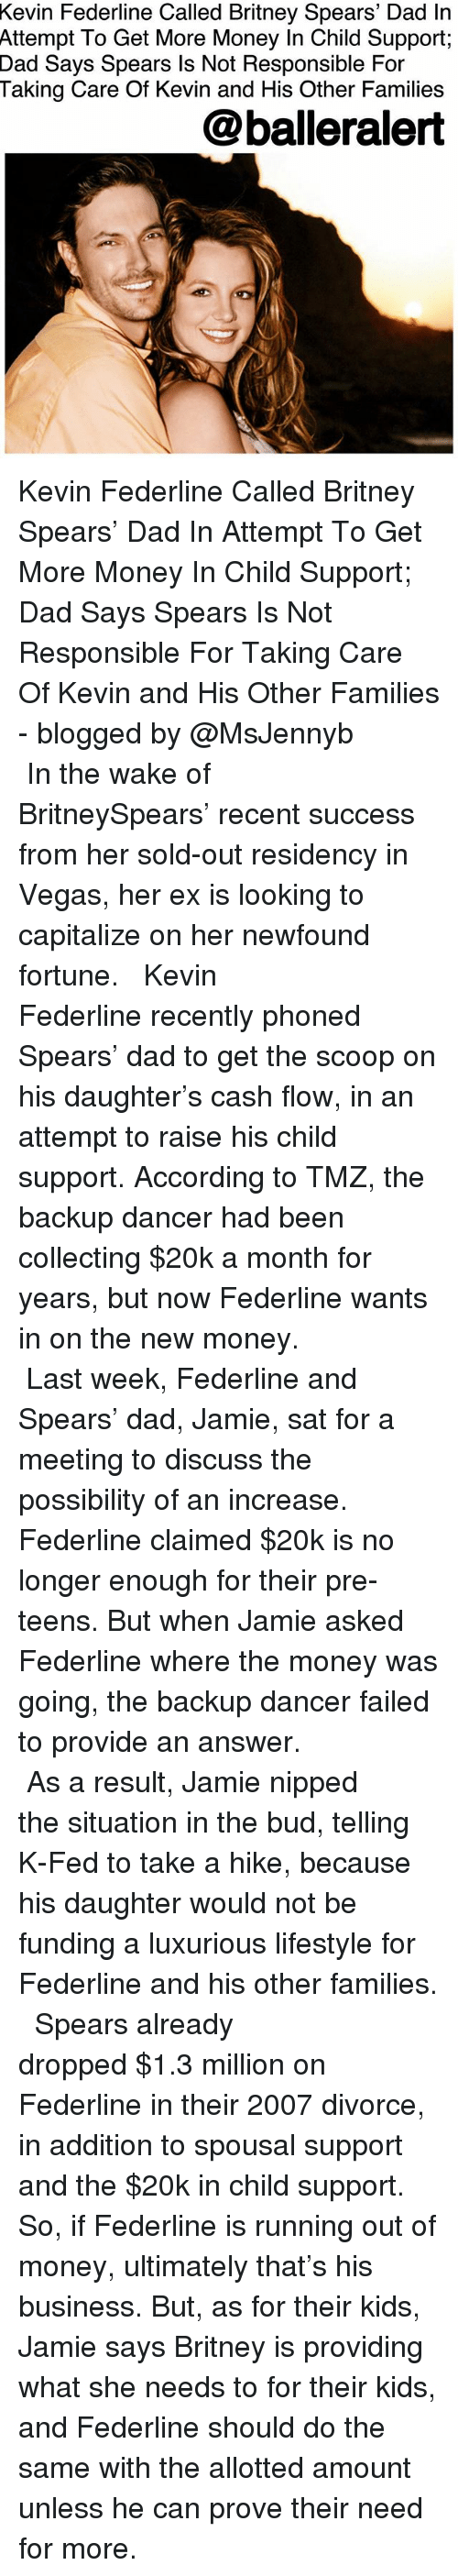 Britney Spears, Child Support, and Dad: Kevin Federline Called Britney Spears' Dad In  Attempt  To Get More Money In Child Support;  Taking Care Of Kevin and His Other Families  @balleralert  Dad Says Spears ls Not Responsible For Kevin Federline Called Britney Spears' Dad In Attempt To Get More Money In Child Support; Dad Says Spears Is Not Responsible For Taking Care Of Kevin and His Other Families - blogged by @MsJennyb ⠀⠀⠀⠀⠀⠀⠀⠀⠀ ⠀⠀⠀⠀⠀⠀⠀⠀⠀ In the wake of BritneySpears' recent success from her sold-out residency in Vegas, her ex is looking to capitalize on her newfound fortune. ⠀⠀⠀⠀⠀⠀⠀⠀⠀ ⠀⠀⠀⠀⠀⠀⠀⠀⠀ Kevin Federline recently phoned Spears' dad to get the scoop on his daughter's cash flow, in an attempt to raise his child support. According to TMZ, the backup dancer had been collecting $20k a month for years, but now Federline wants in on the new money. ⠀⠀⠀⠀⠀⠀⠀⠀⠀ ⠀⠀⠀⠀⠀⠀⠀⠀⠀ Last week, Federline and Spears' dad, Jamie, sat for a meeting to discuss the possibility of an increase. Federline claimed $20k is no longer enough for their pre-teens. But when Jamie asked Federline where the money was going, the backup dancer failed to provide an answer. ⠀⠀⠀⠀⠀⠀⠀⠀⠀ ⠀⠀⠀⠀⠀⠀⠀⠀⠀ As a result, Jamie nipped the situation in the bud, telling K-Fed to take a hike, because his daughter would not be funding a luxurious lifestyle for Federline and his other families. ⠀⠀⠀⠀⠀⠀⠀⠀⠀ ⠀⠀⠀⠀⠀⠀⠀⠀⠀ Spears already dropped $1.3 million on Federline in their 2007 divorce, in addition to spousal support and the $20k in child support. So, if Federline is running out of money, ultimately that's his business. But, as for their kids, Jamie says Britney is providing what she needs to for their kids, and Federline should do the same with the allotted amount unless he can prove their need for more.